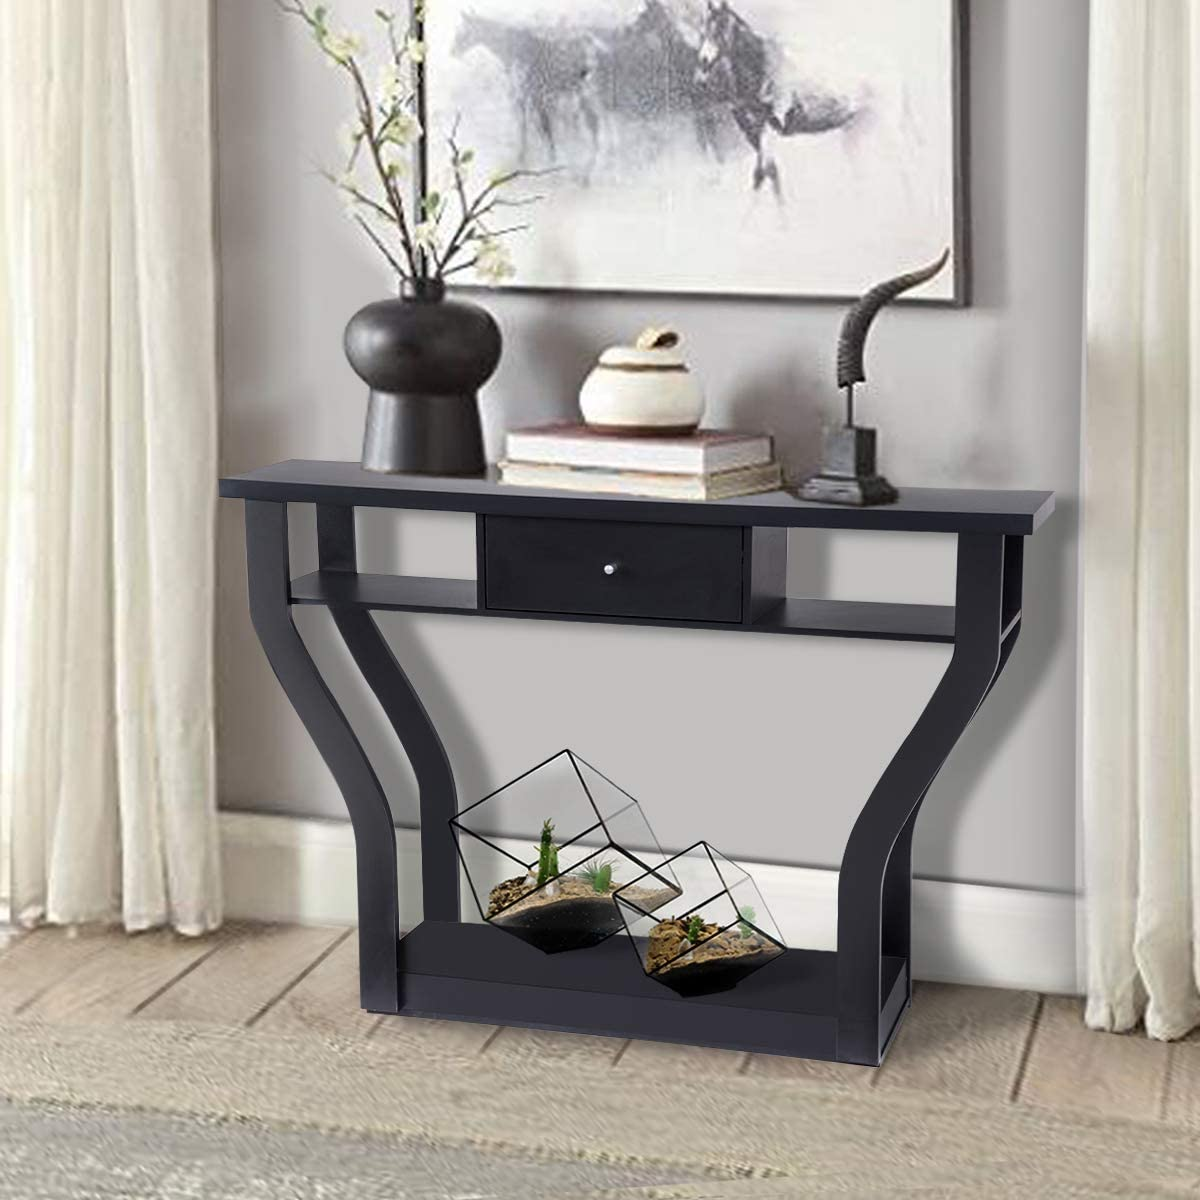 Giantex Console Hall Table for Entryway Small Space Sofa Side Table with Storage Drawer and Shelf Home Office Living Room Furniture Narrow Accent Hall Table Black